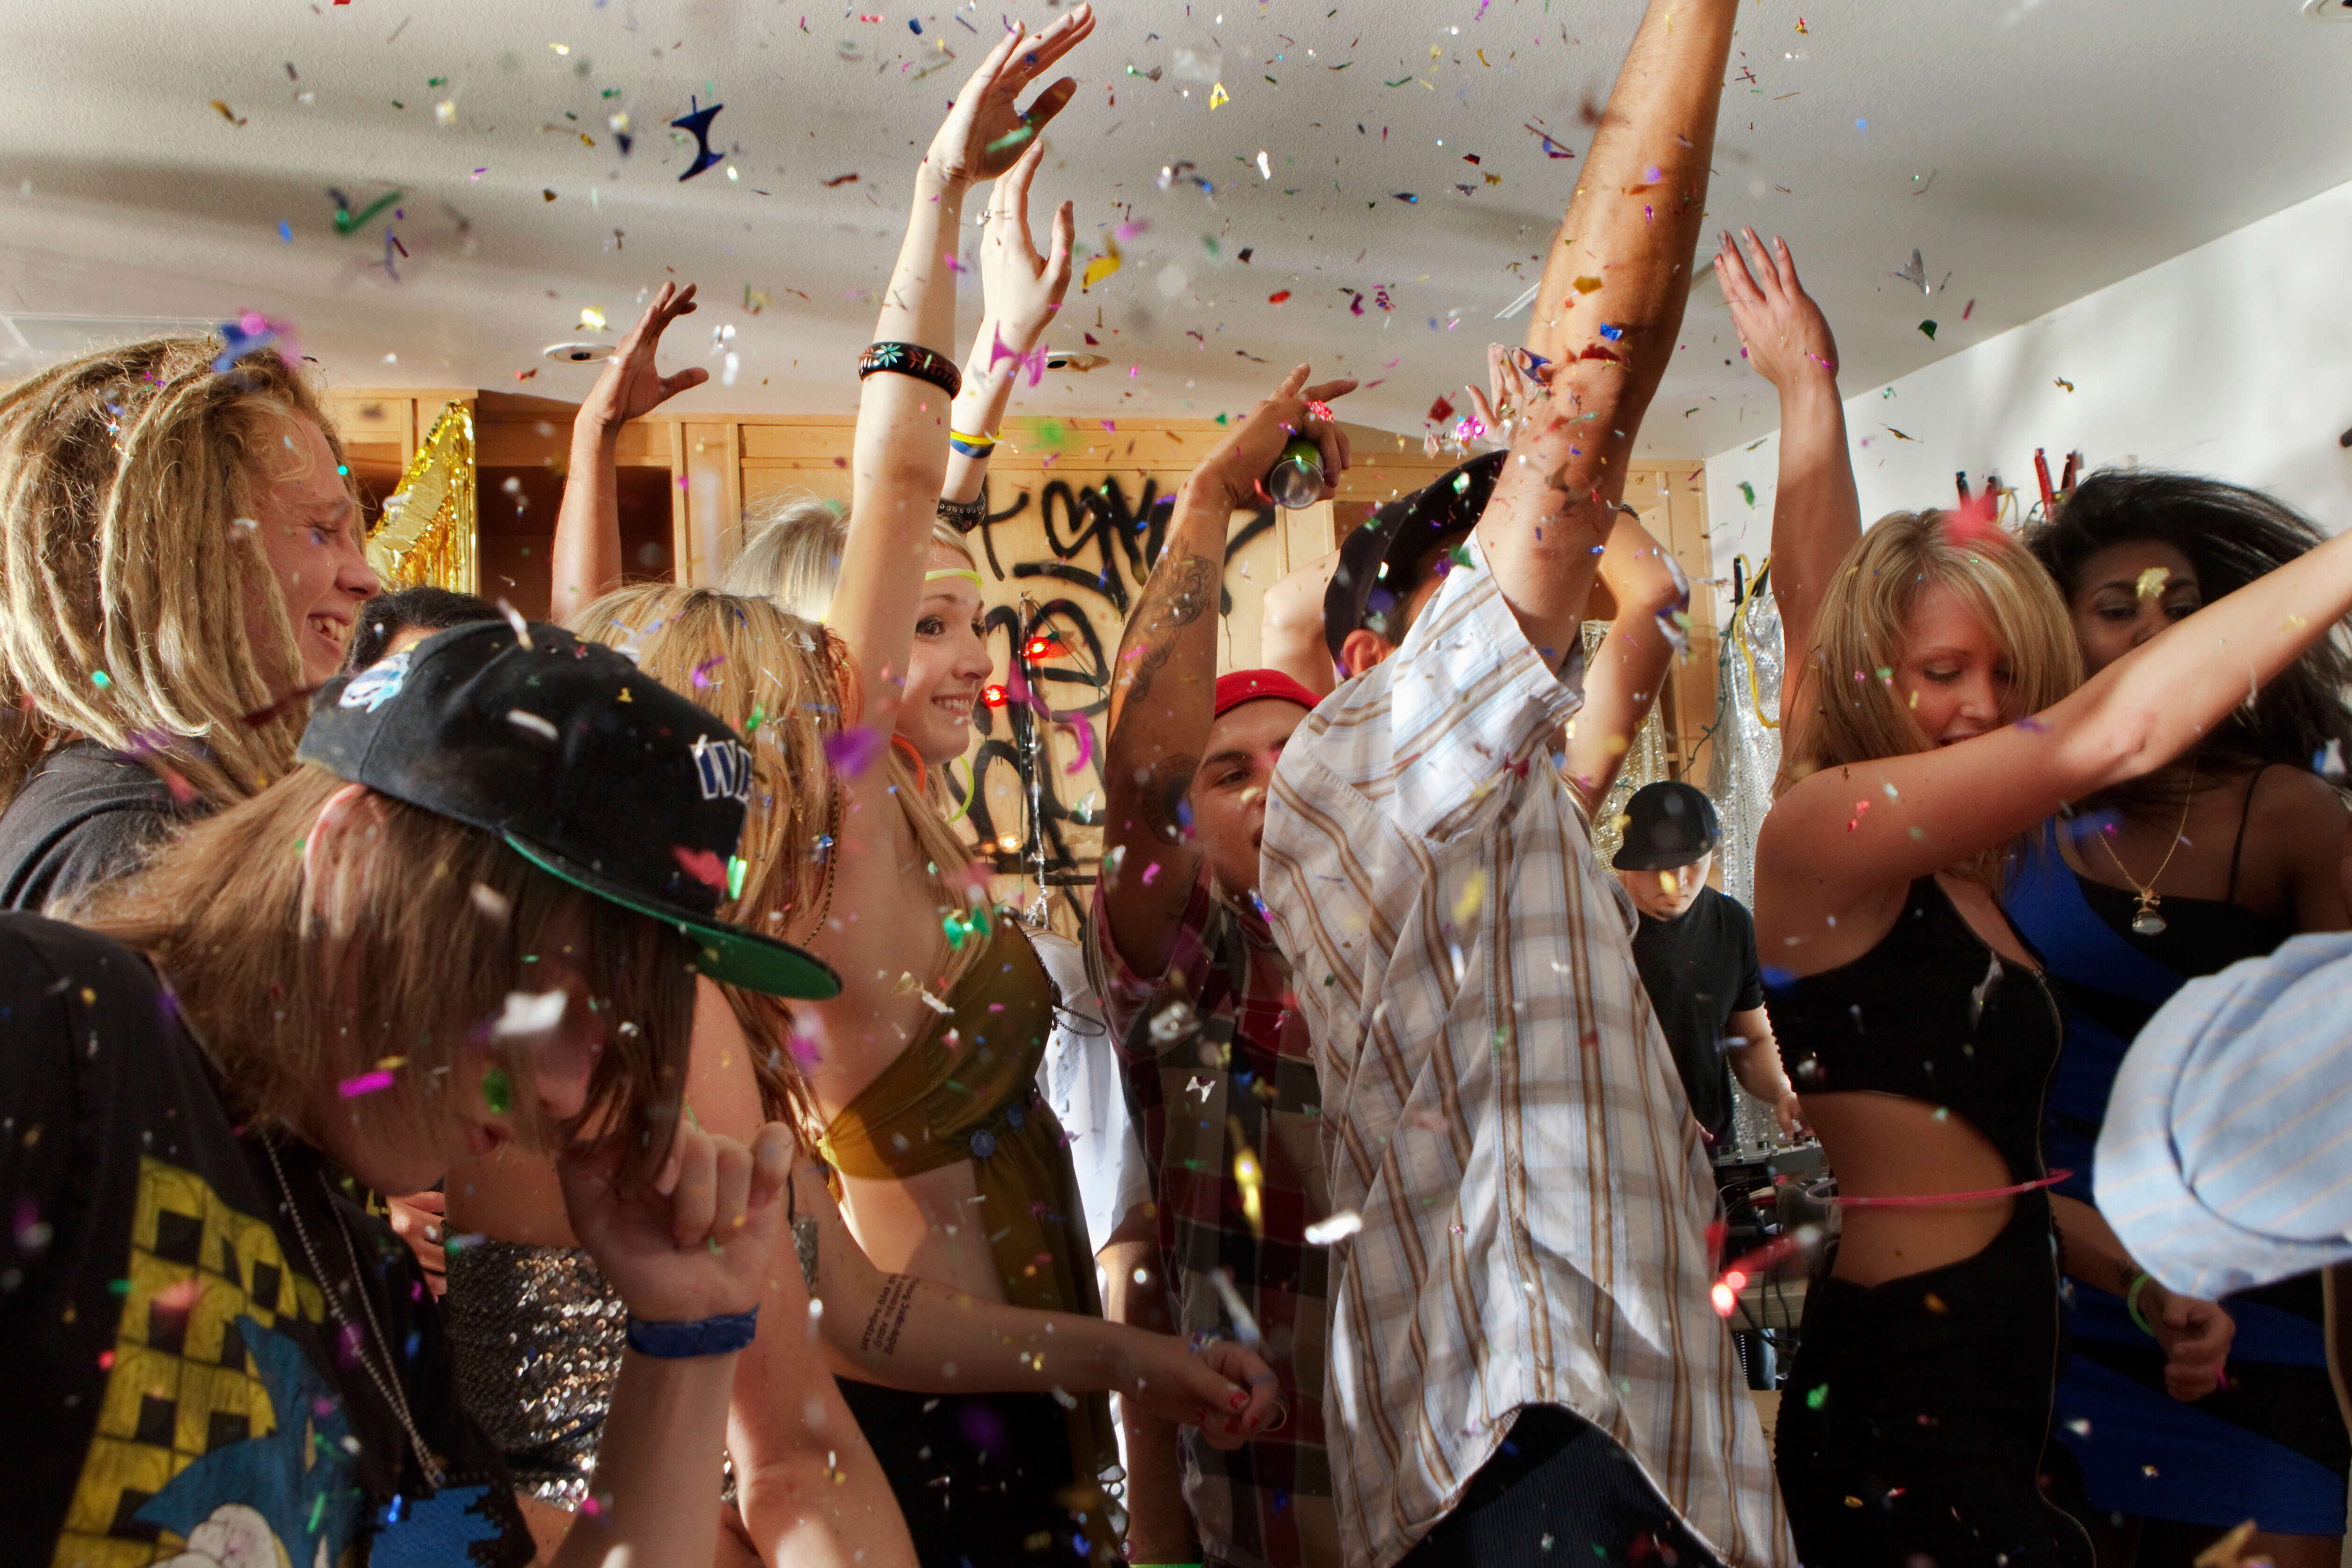 11 People Are Facing A Massive Punishment, Just For Having A Wild Party 29 house party